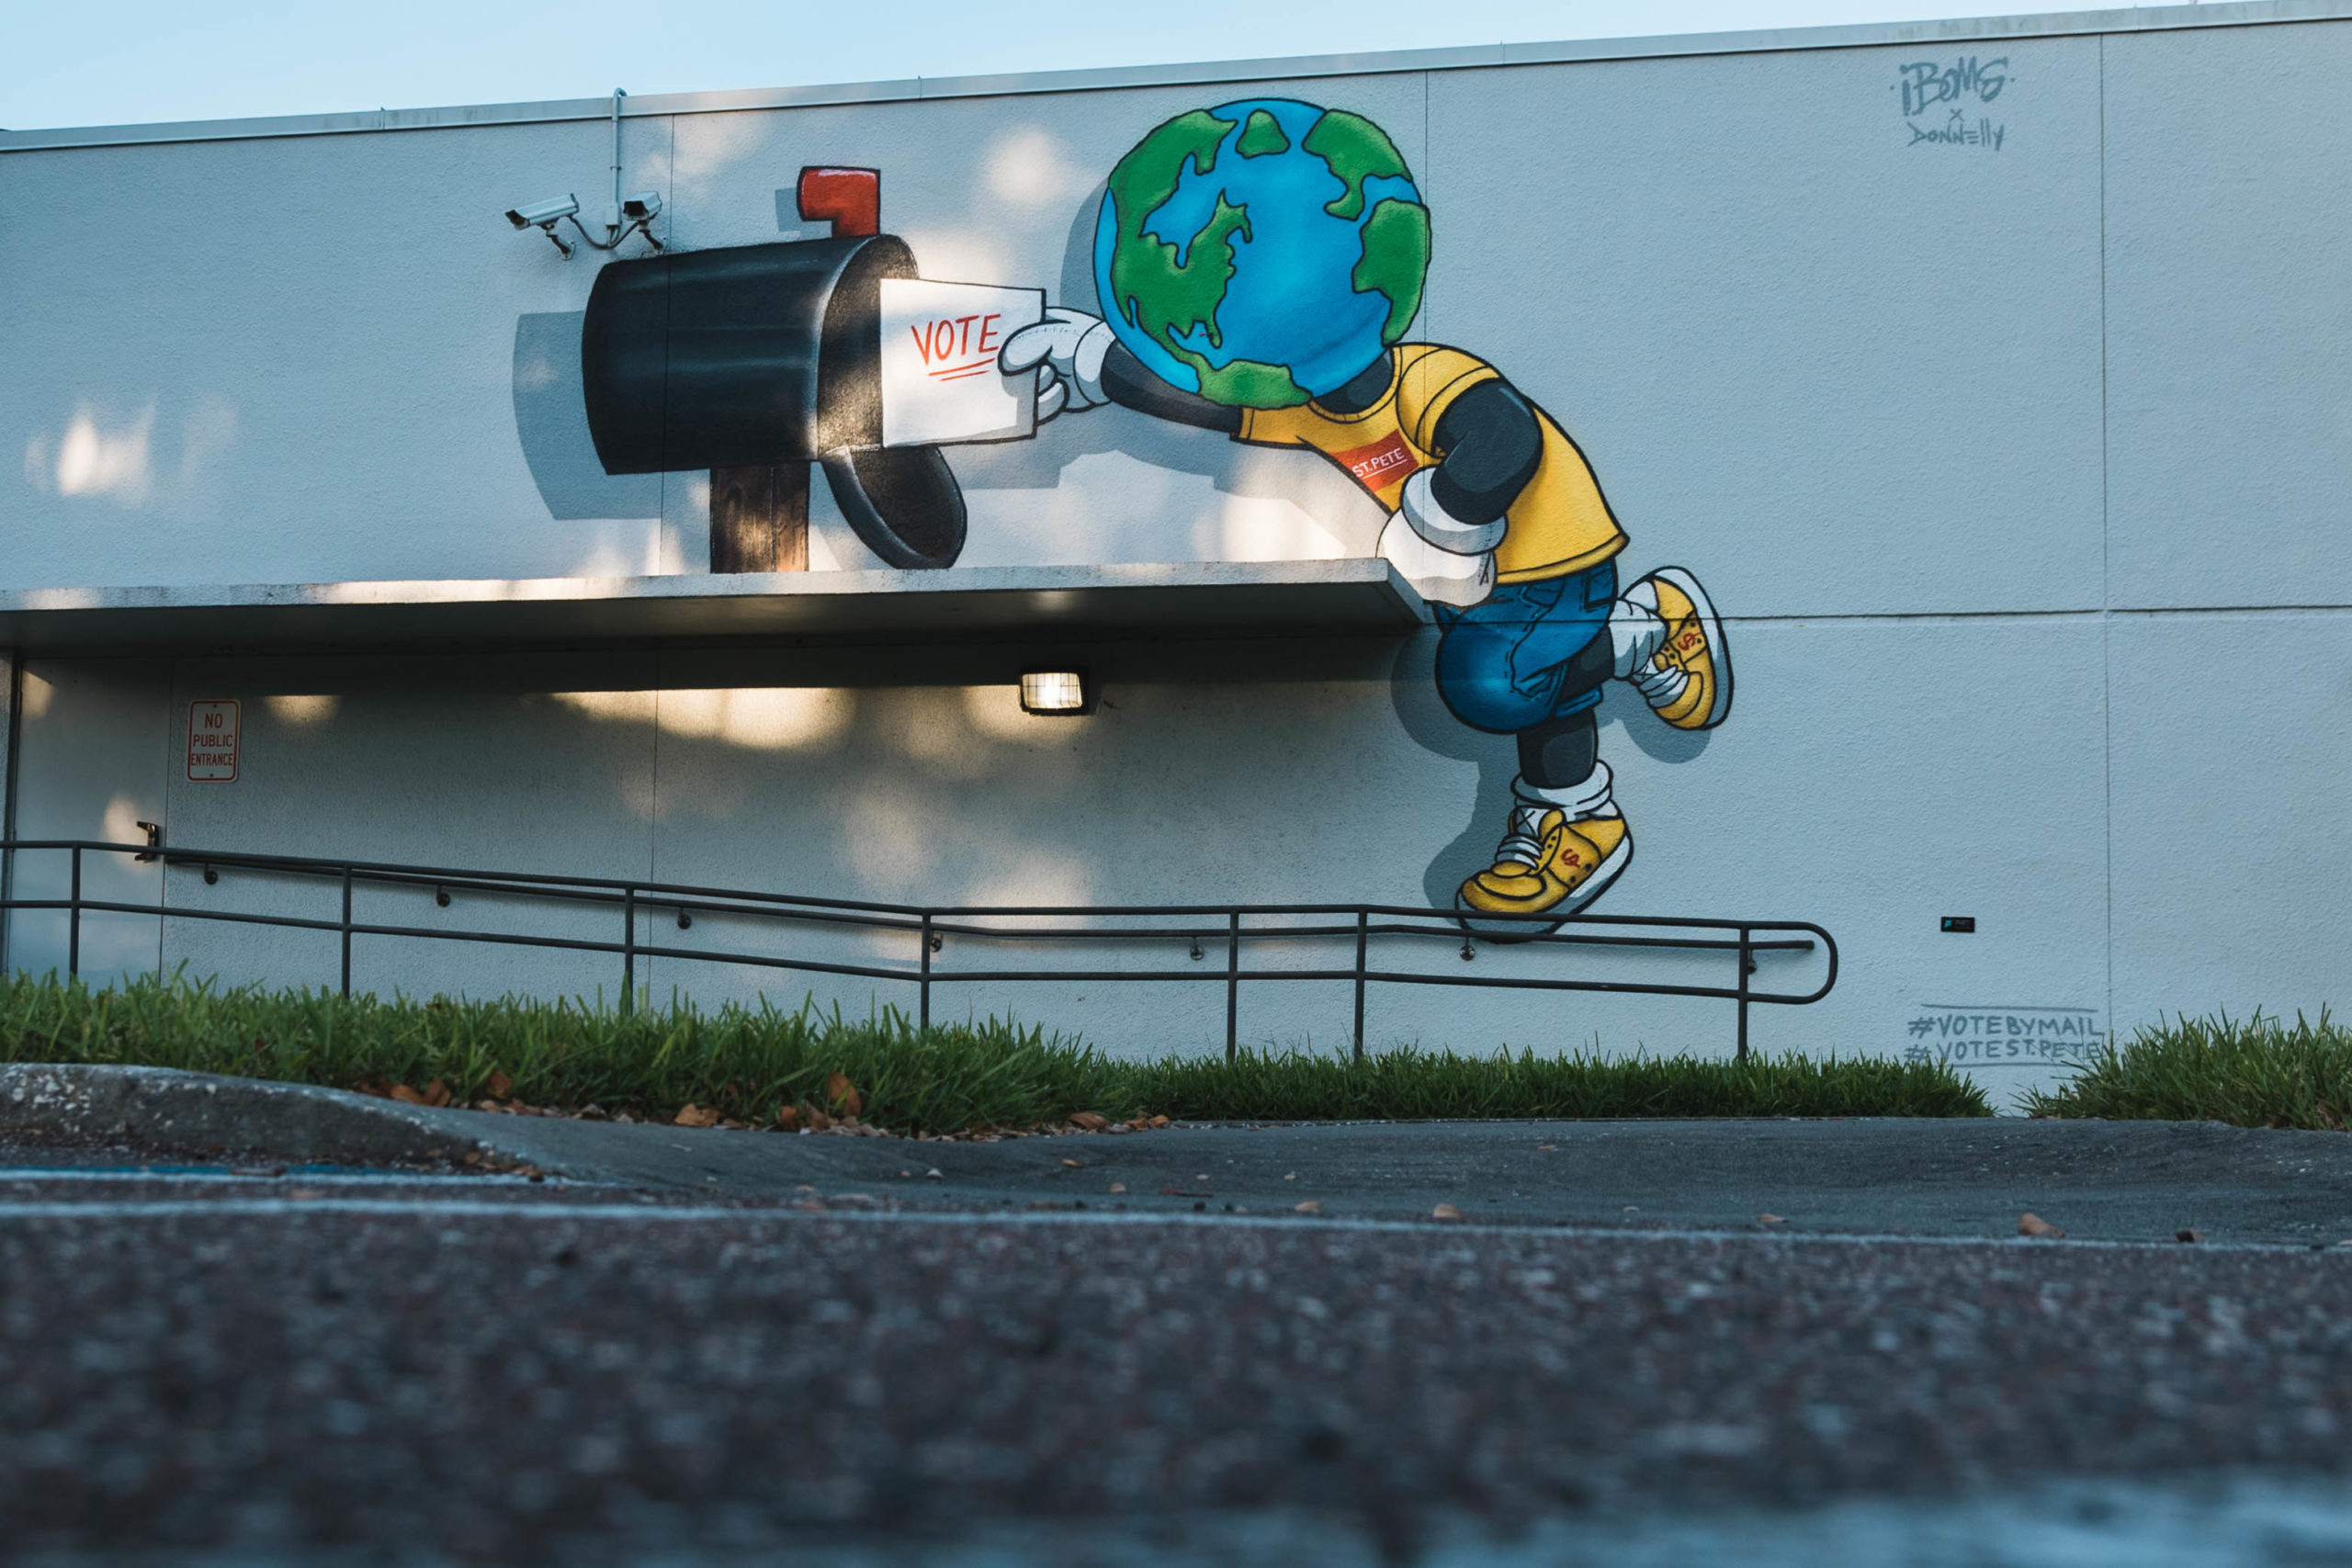 Voting mural in St. Pete with Earth head and mail-in ballot